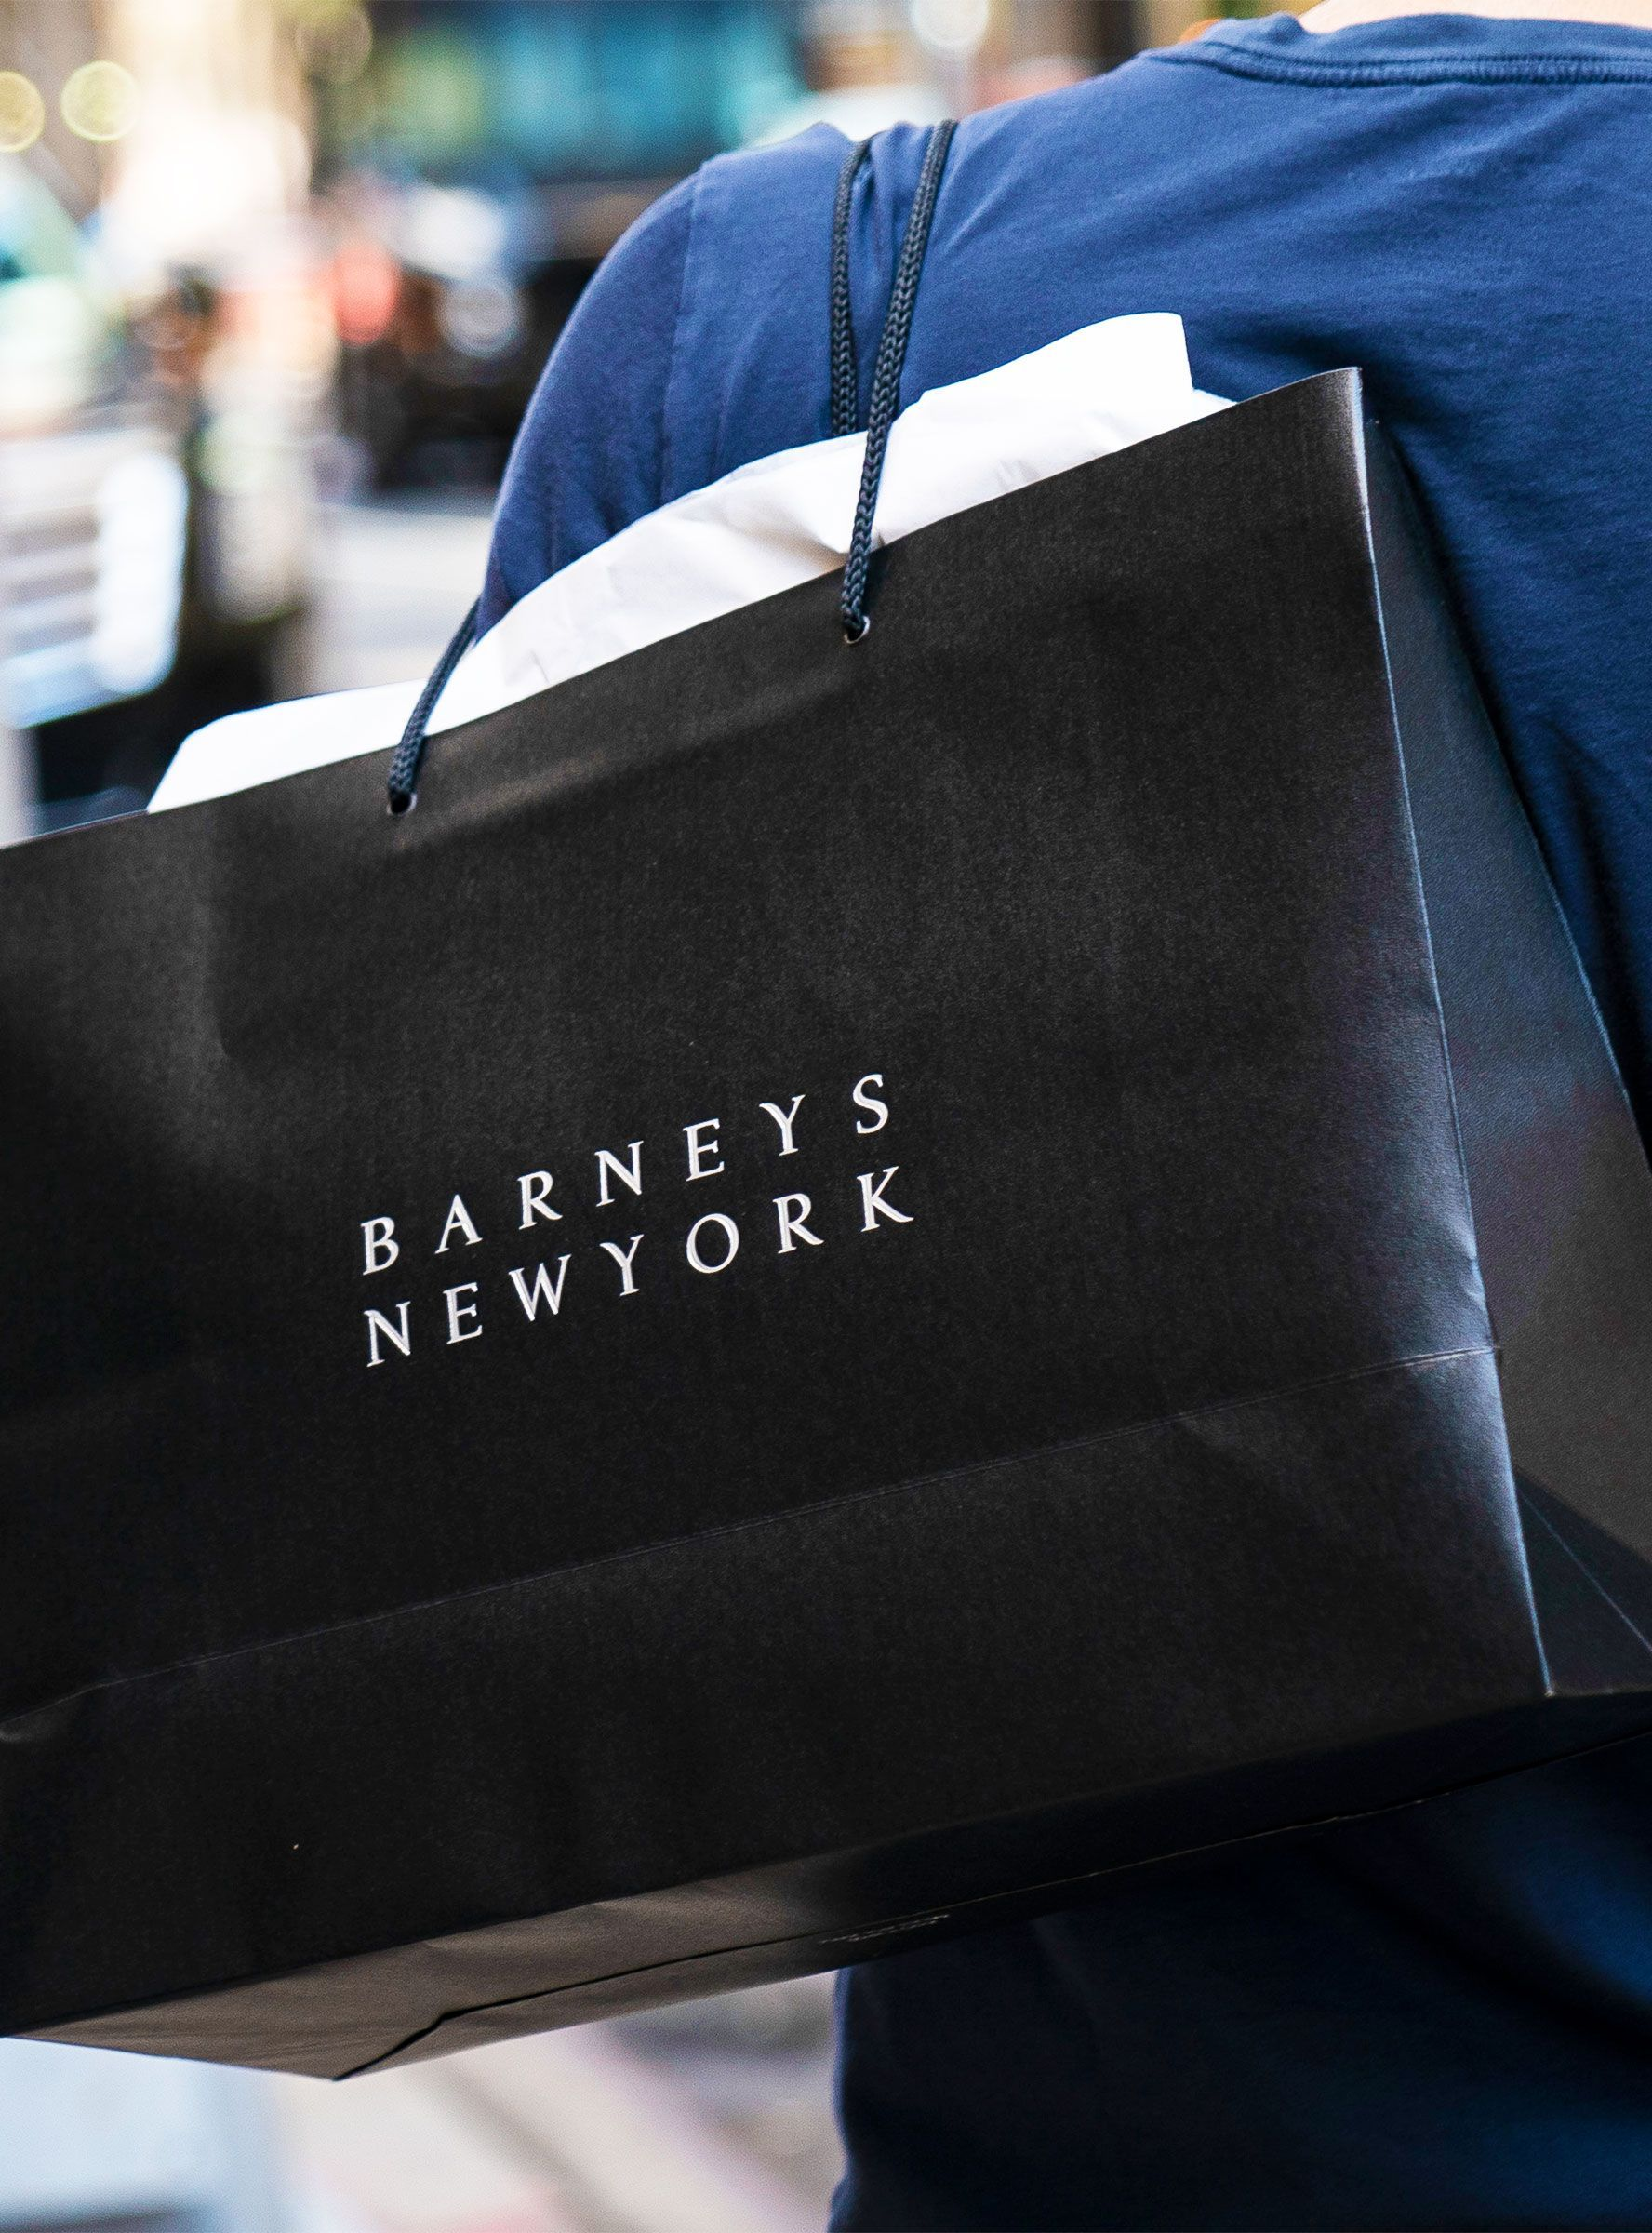 Barneys New York Is Officially Closing After Filing For